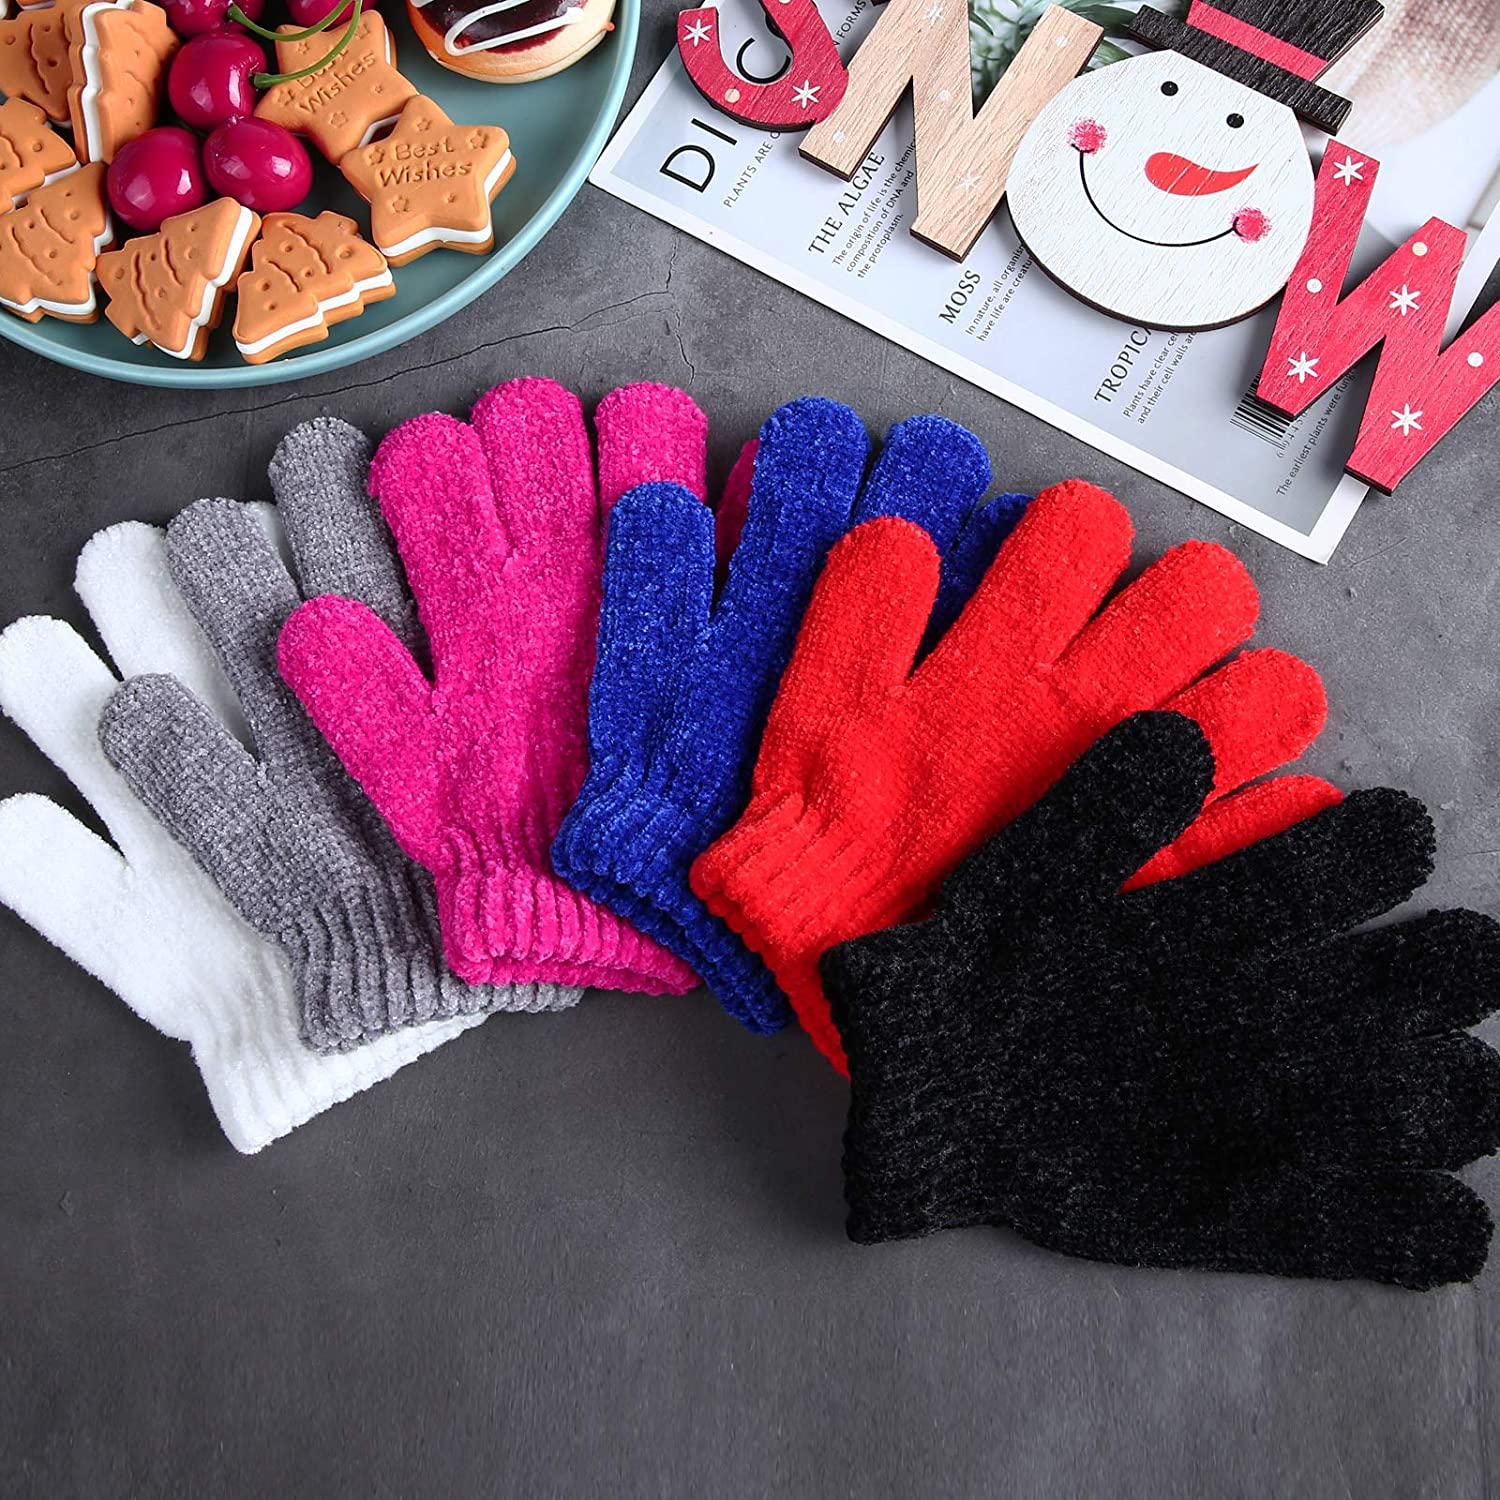 Cooraby 12 Pairs Kids Warm Gloves Chenille Cashmere Stretchy Knitted Gloves for Boys Girls